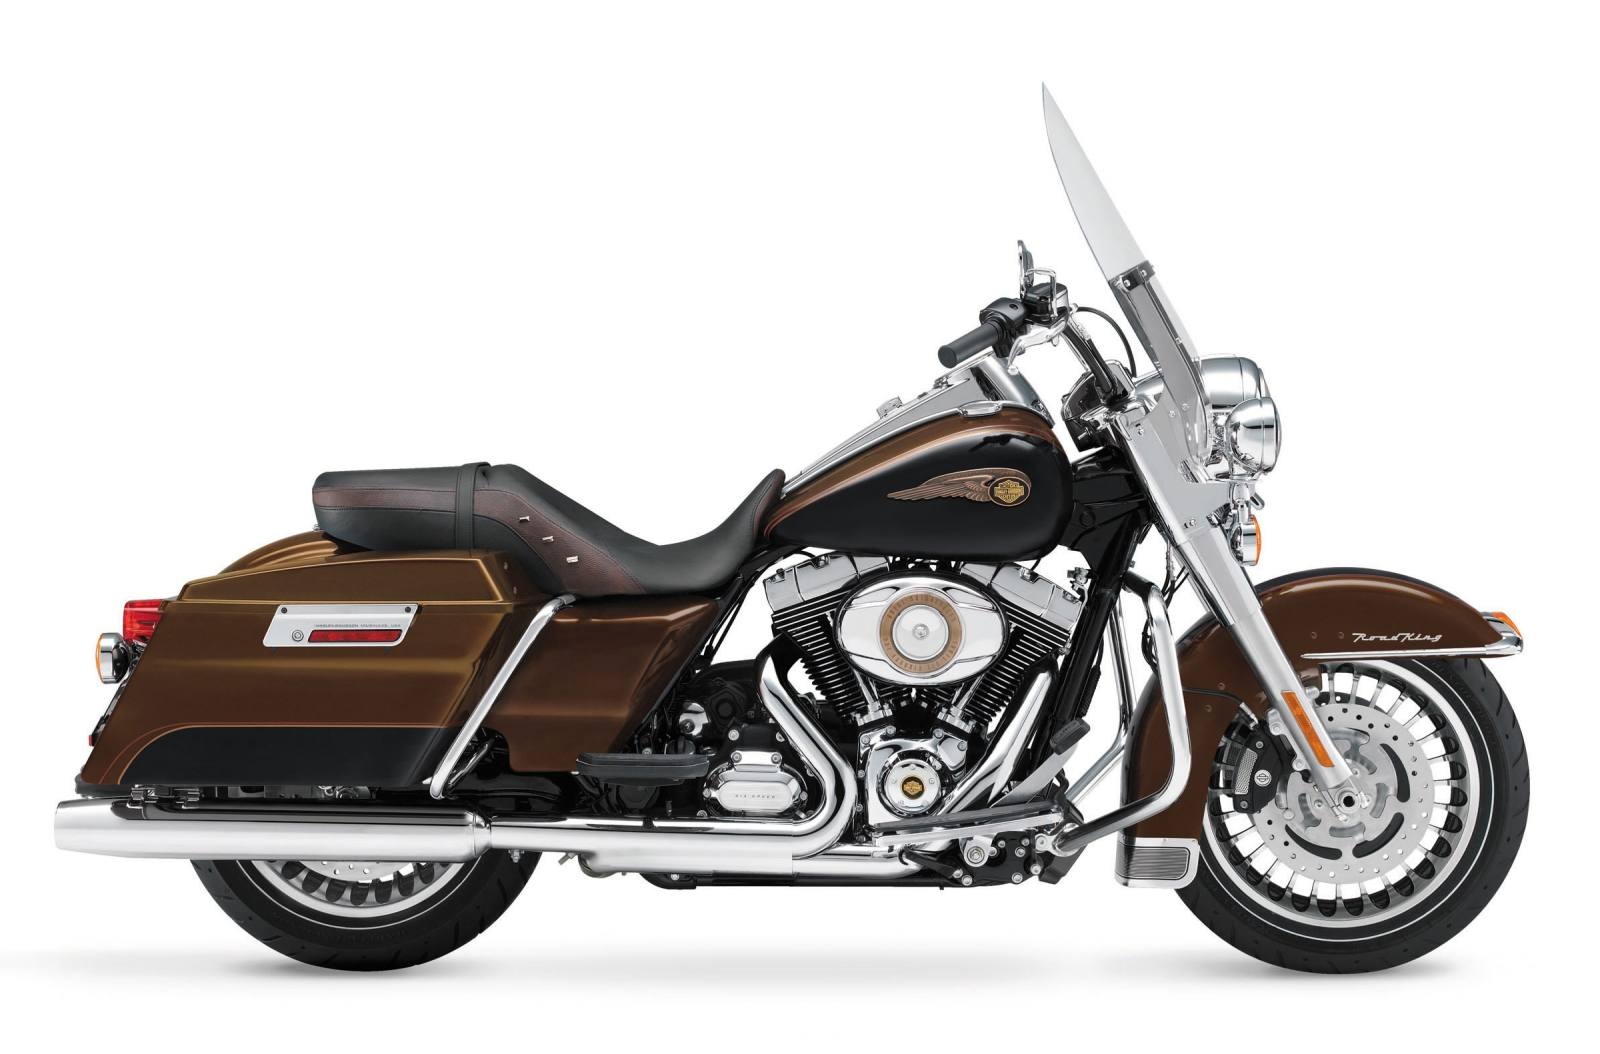 2013 Harley Davidson Flhr Road King 110th Anniversary Edition For Home Data Cable Wiring Together With Brake Cables And Vintage Bronze Black